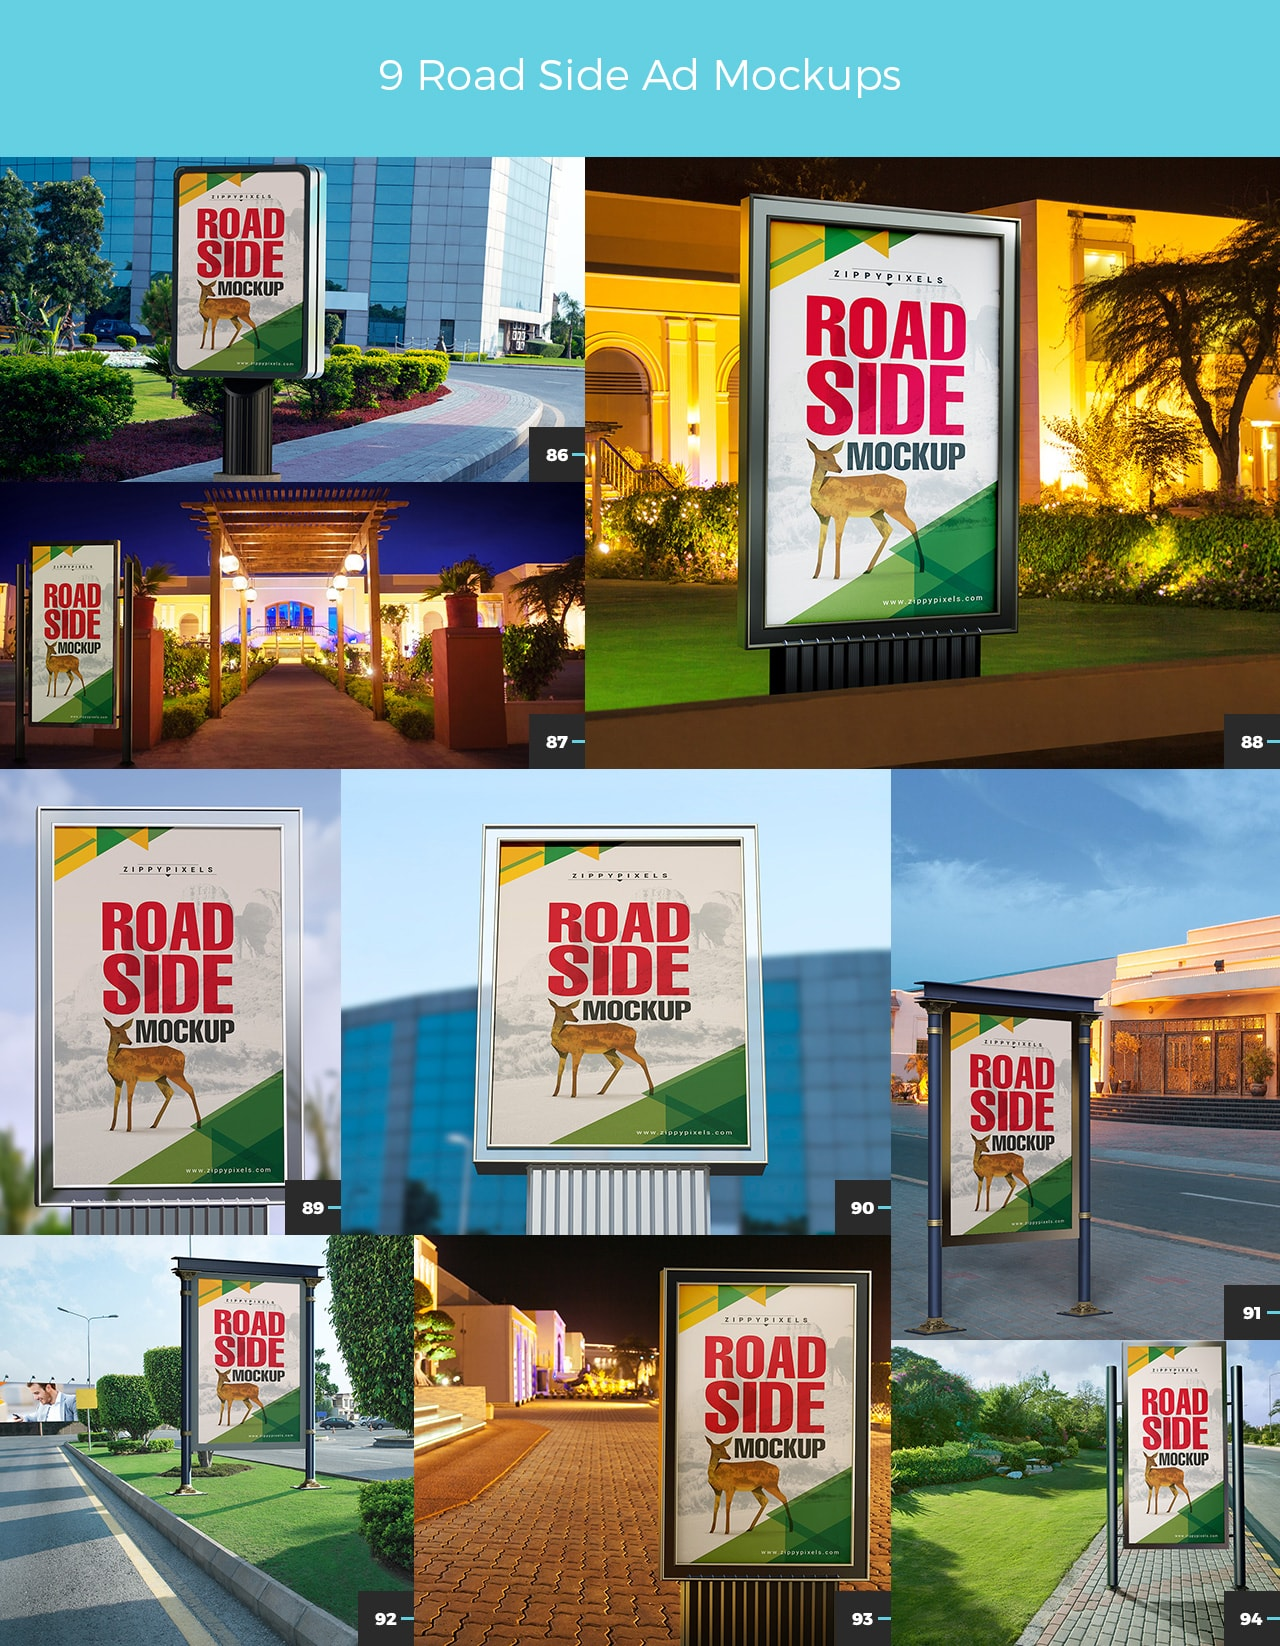 03 9 ROAD SIDE AD MOCKUPS